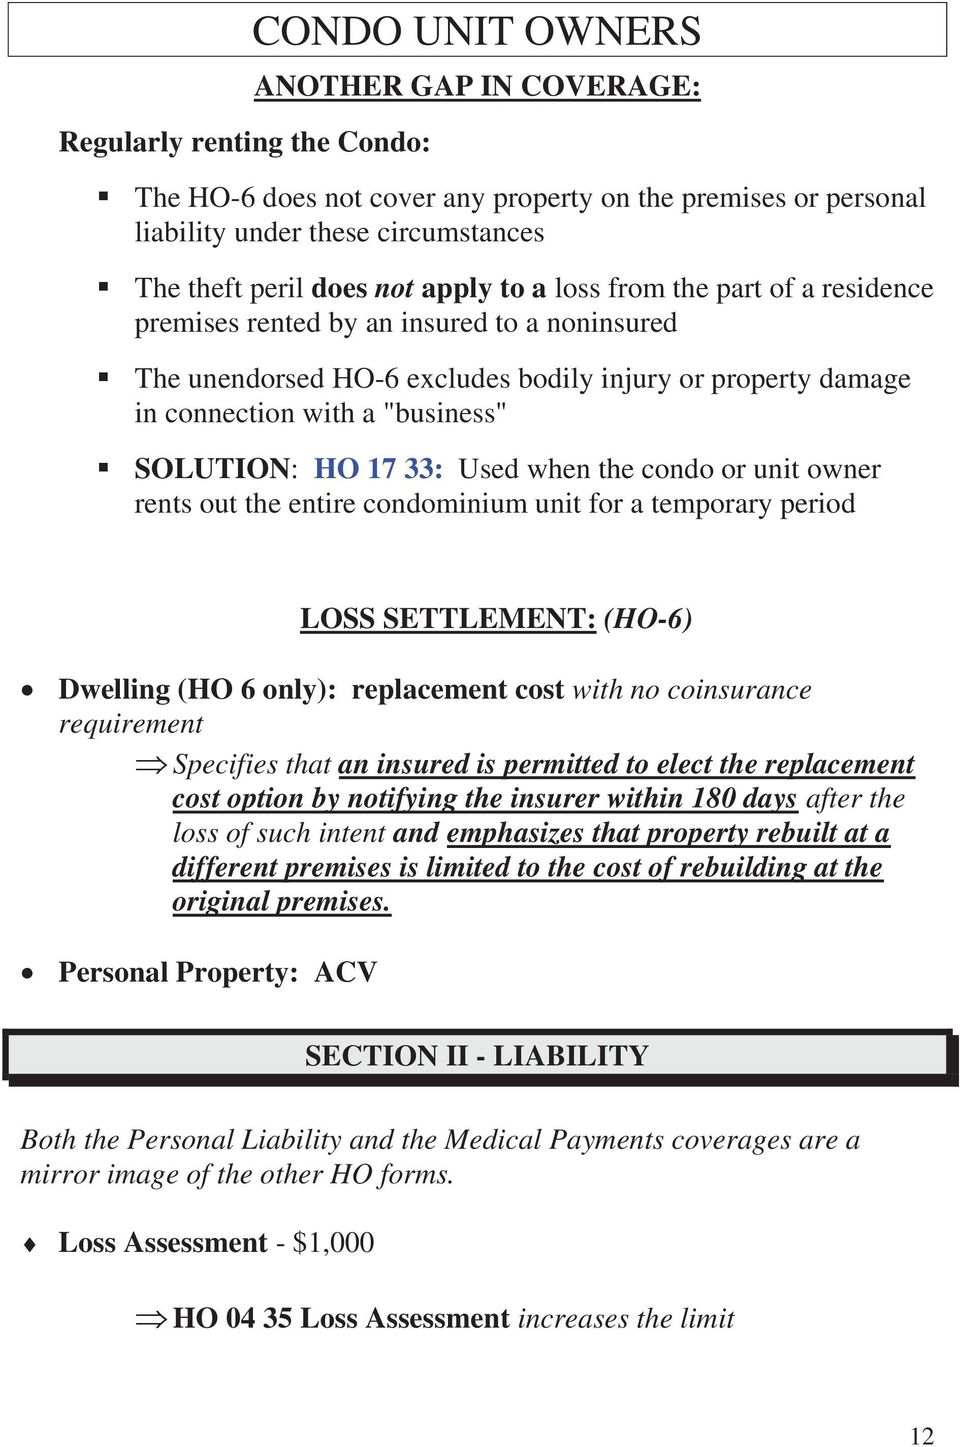 17 33: Used when the condo or unit owner rents out the entire condominium unit for a temporary period LOSS SETTLEMENT: (HO-6) Dwelling (HO 6 only): replacement cost with no coinsurance requirement